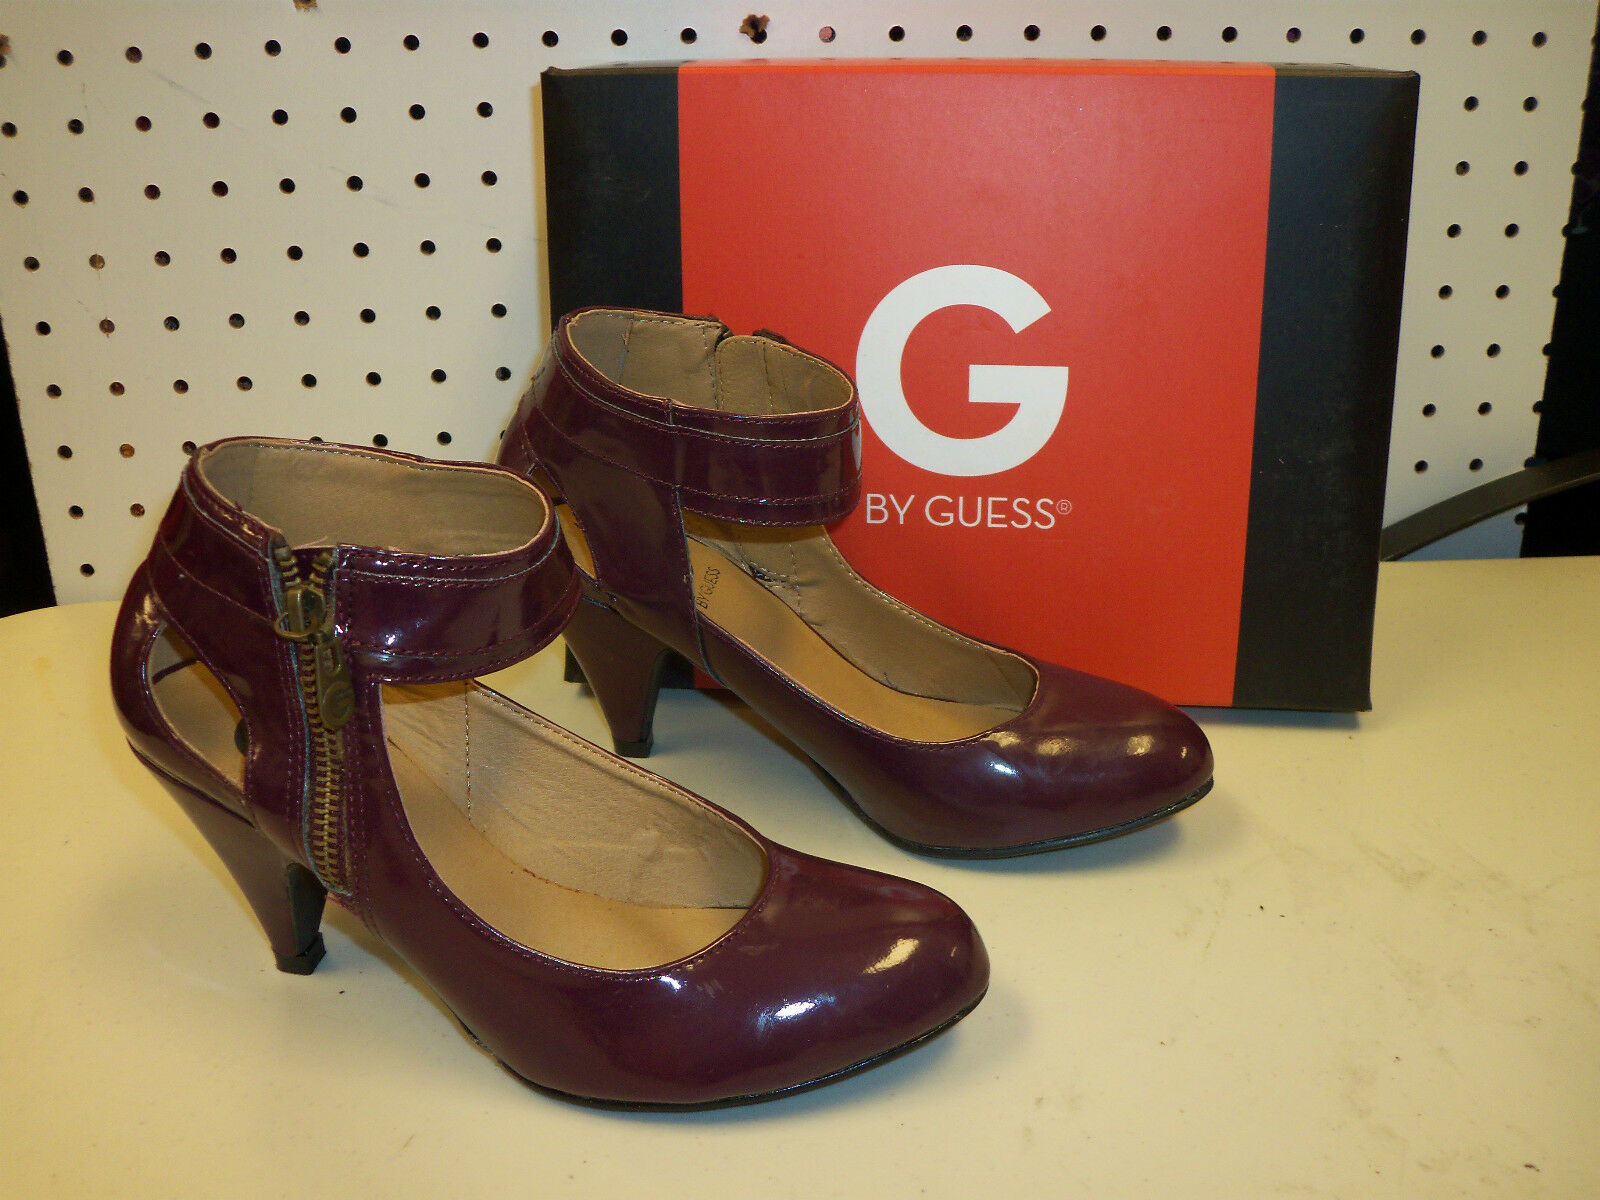 G By Guess New Womens Gilana Dark Red Synthetic Heels shoes Mary Janes 6 M